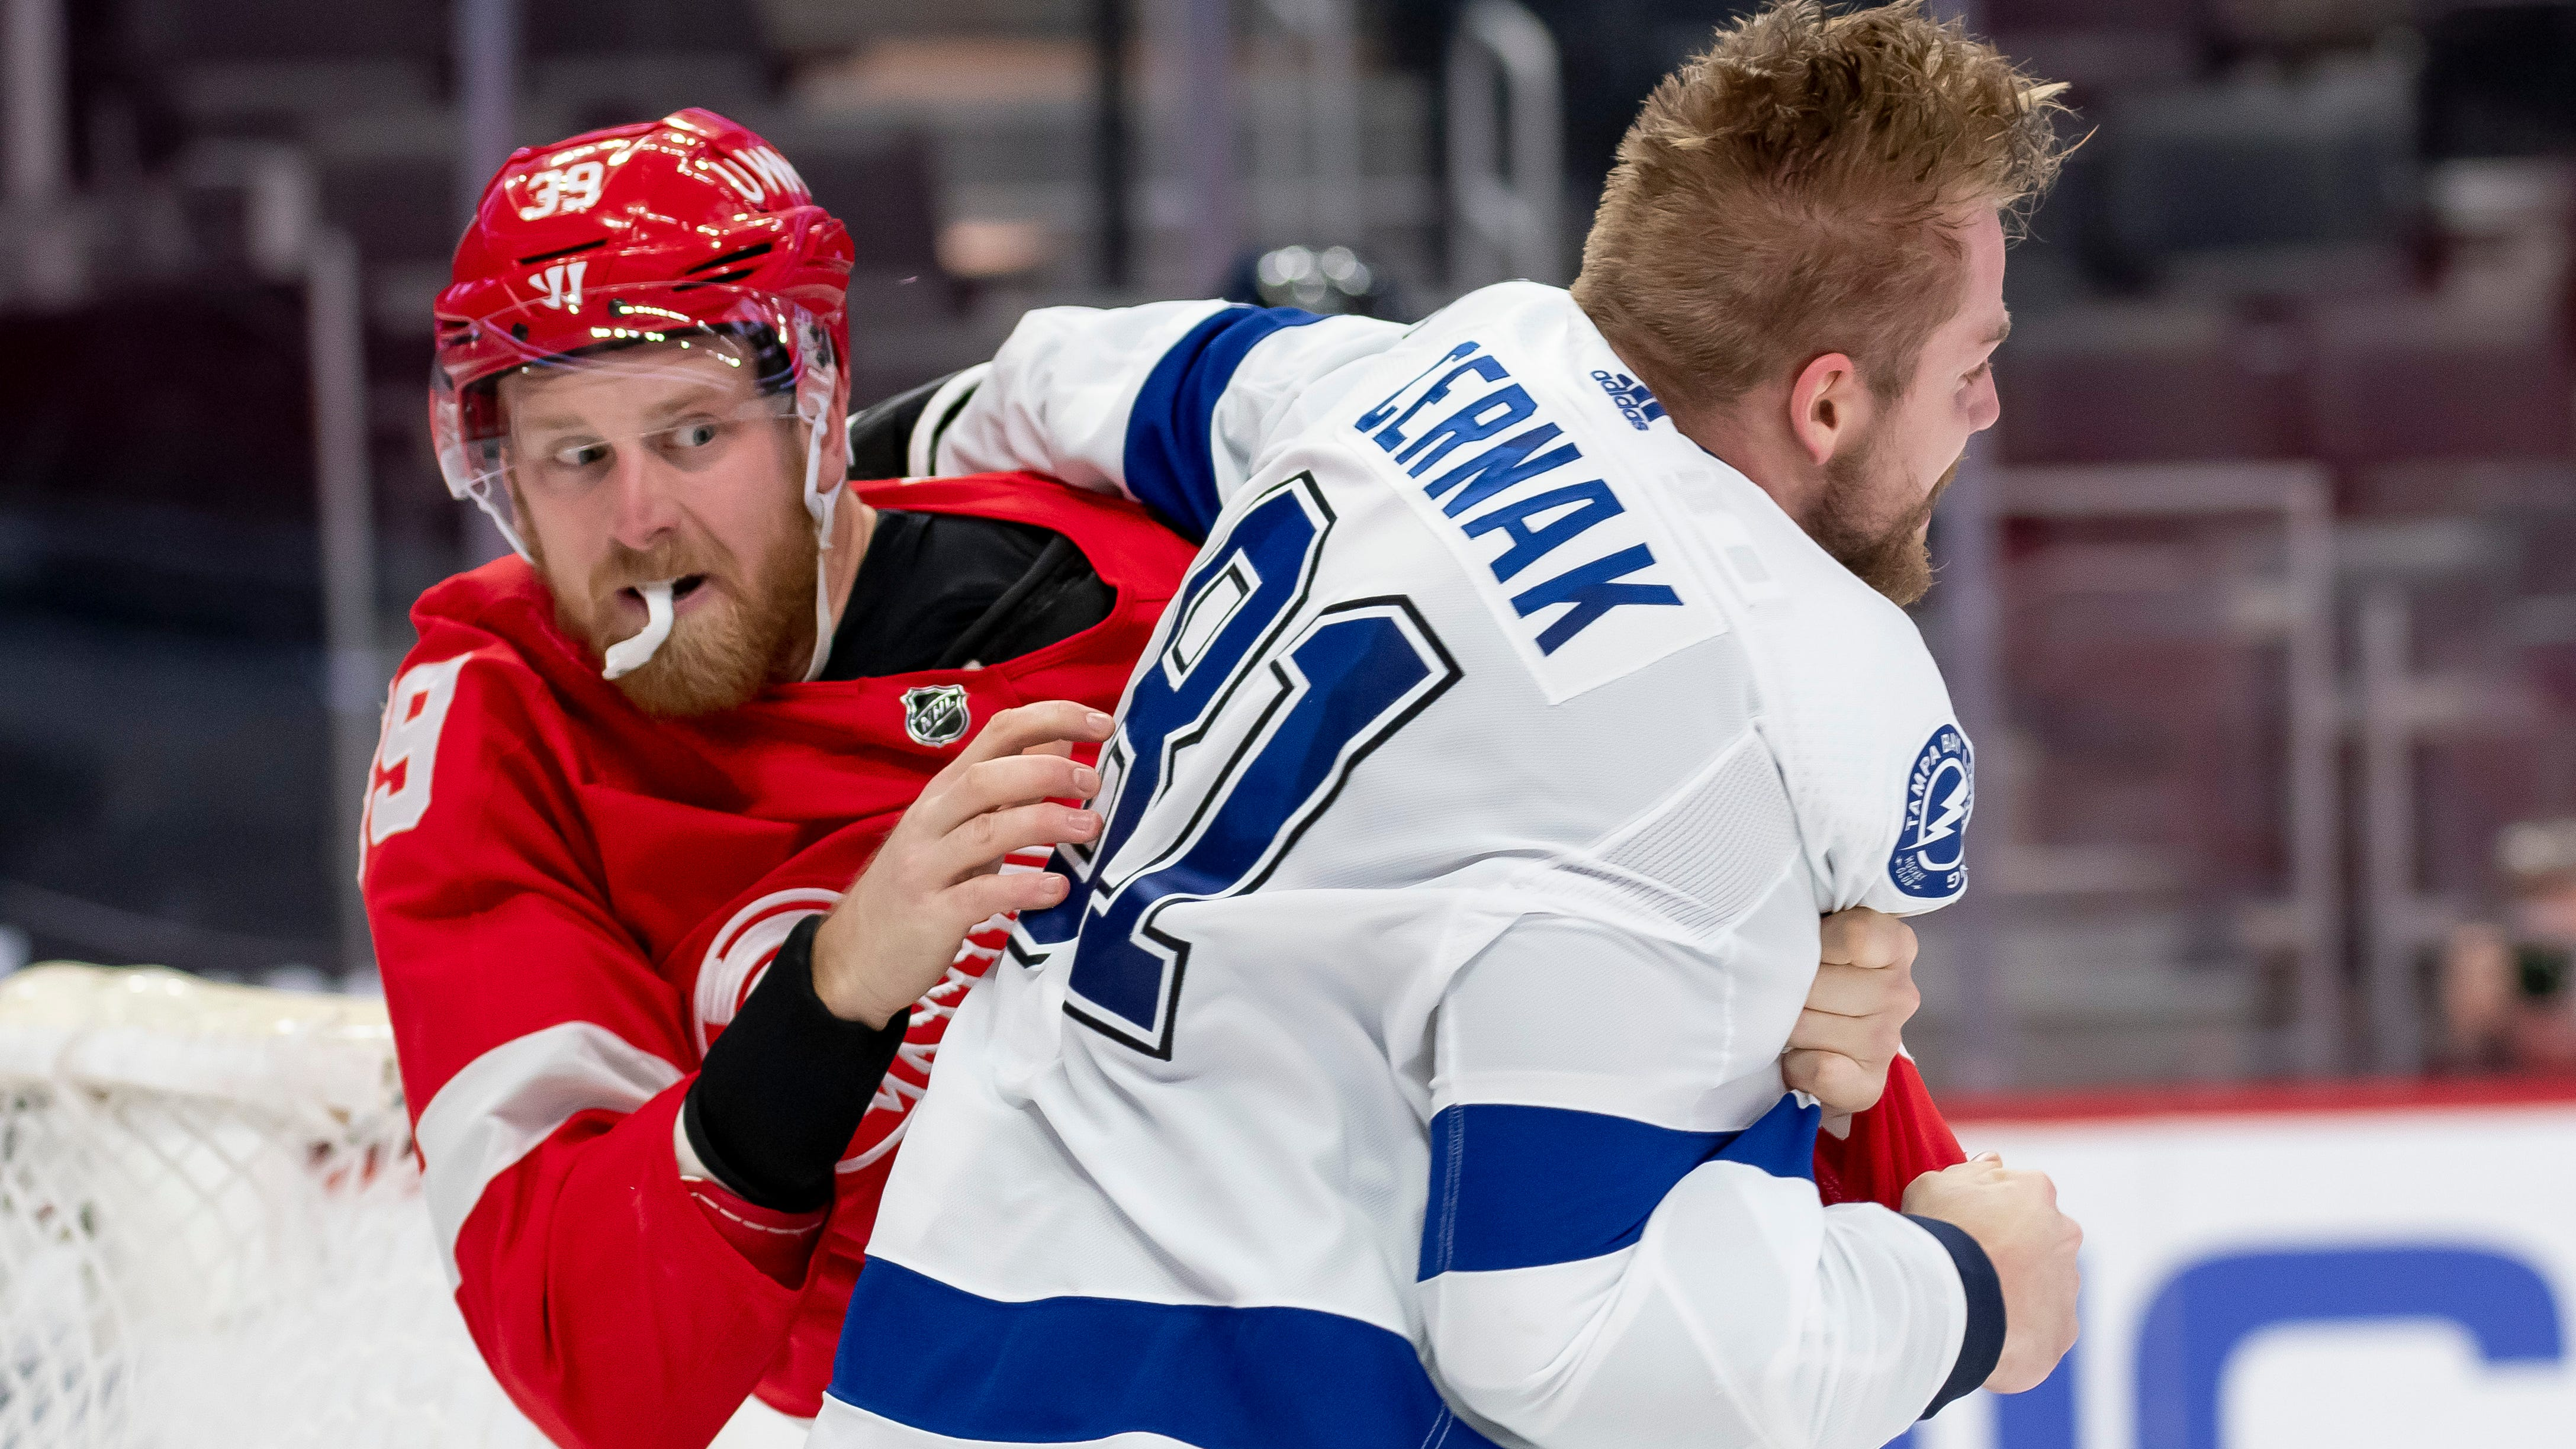 OctoPulse podcast: Anthony Mantha era ends abruptly, Brian Lawton analysis